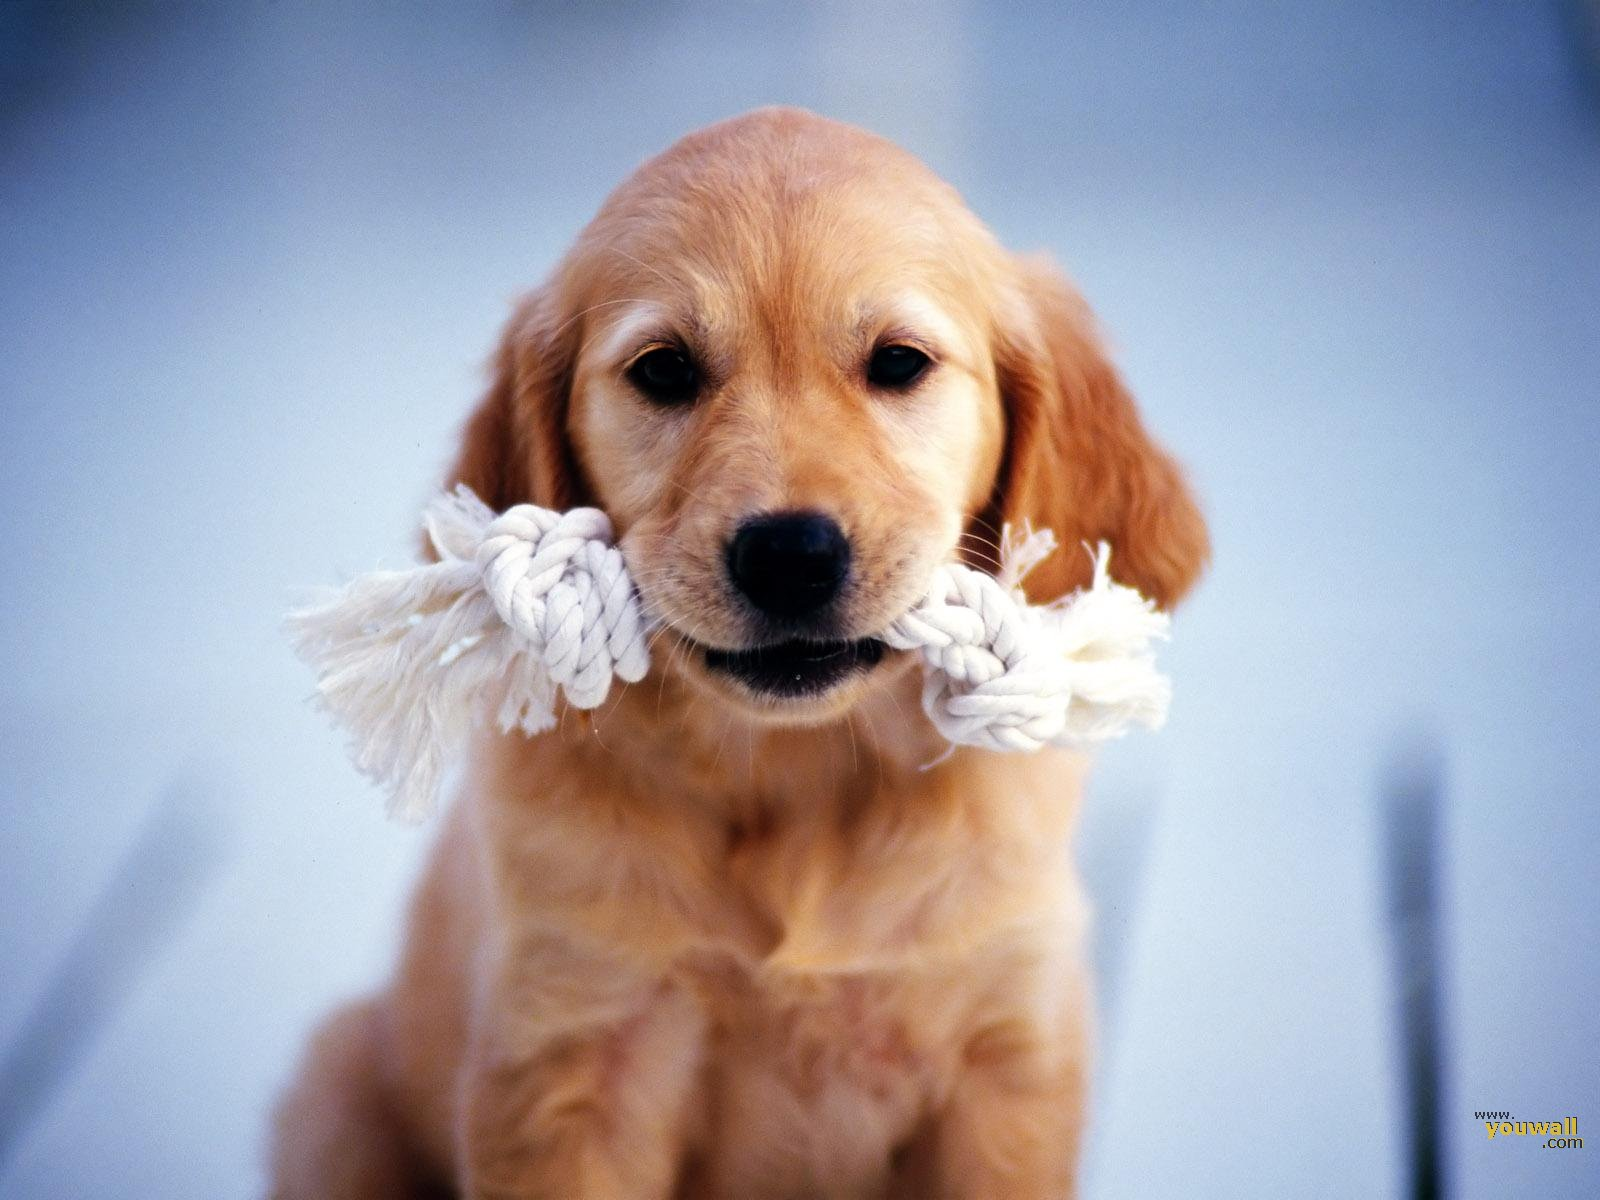 puppy dog wallpaper - photo #24